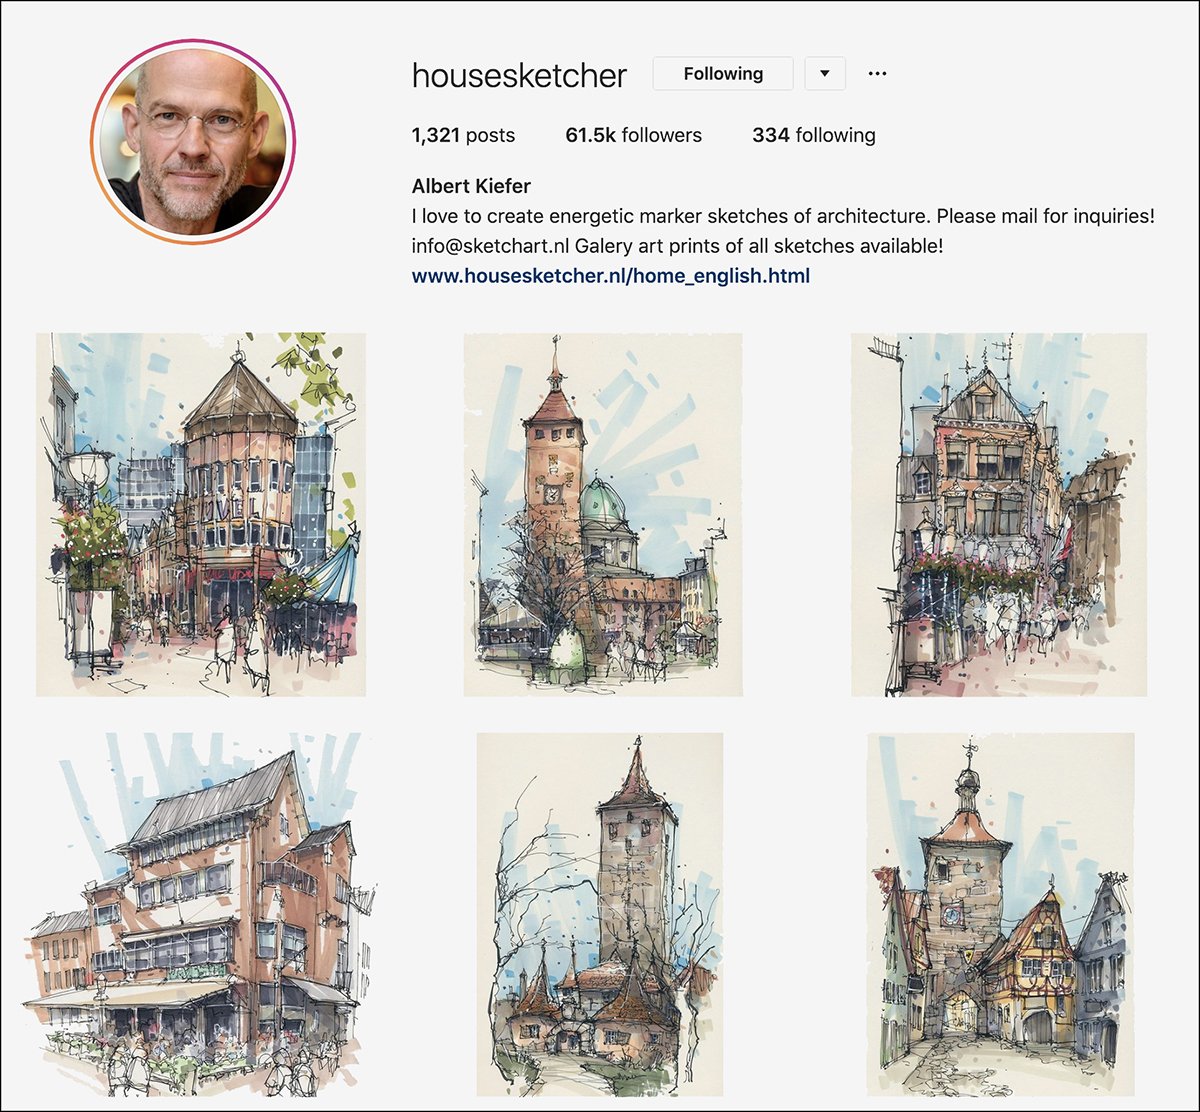 housesketcher Instagram account - good for sketching